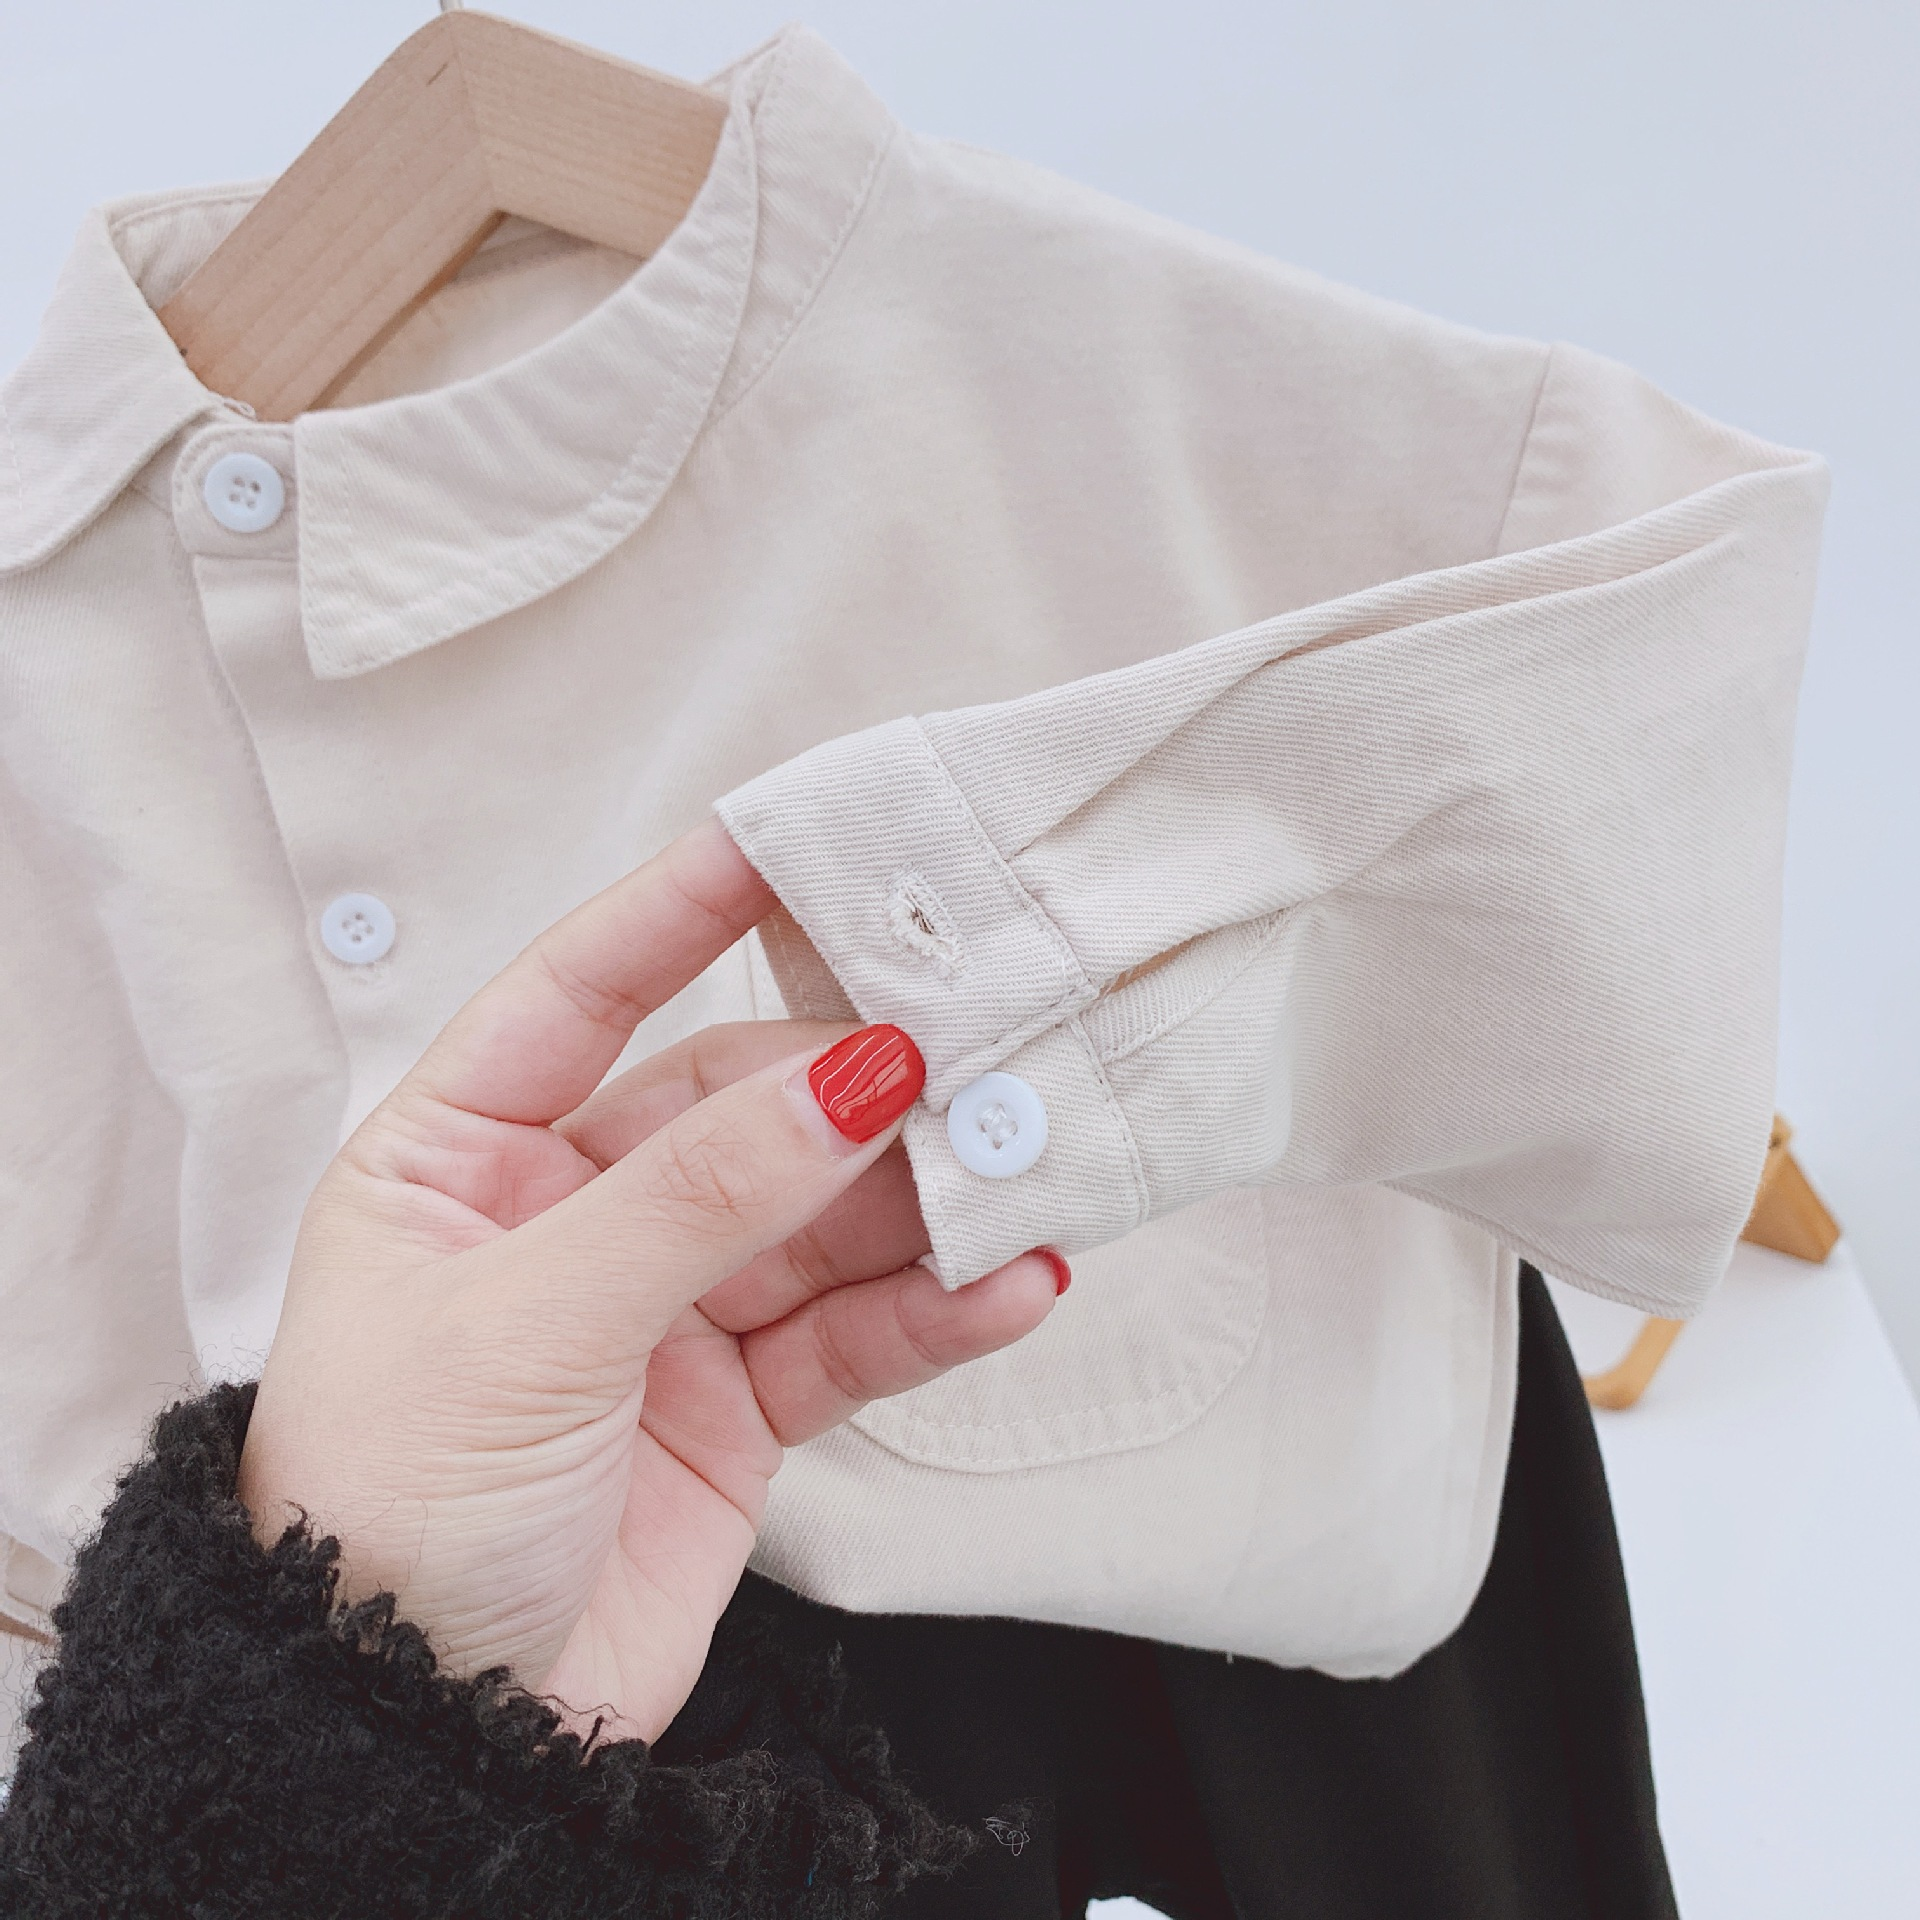 Children's Shirt 2020 Spring New Boys' Diagonal Collar Shirt Top Baby Two Color Shirt Baby Boy Clothes Girls Blouse